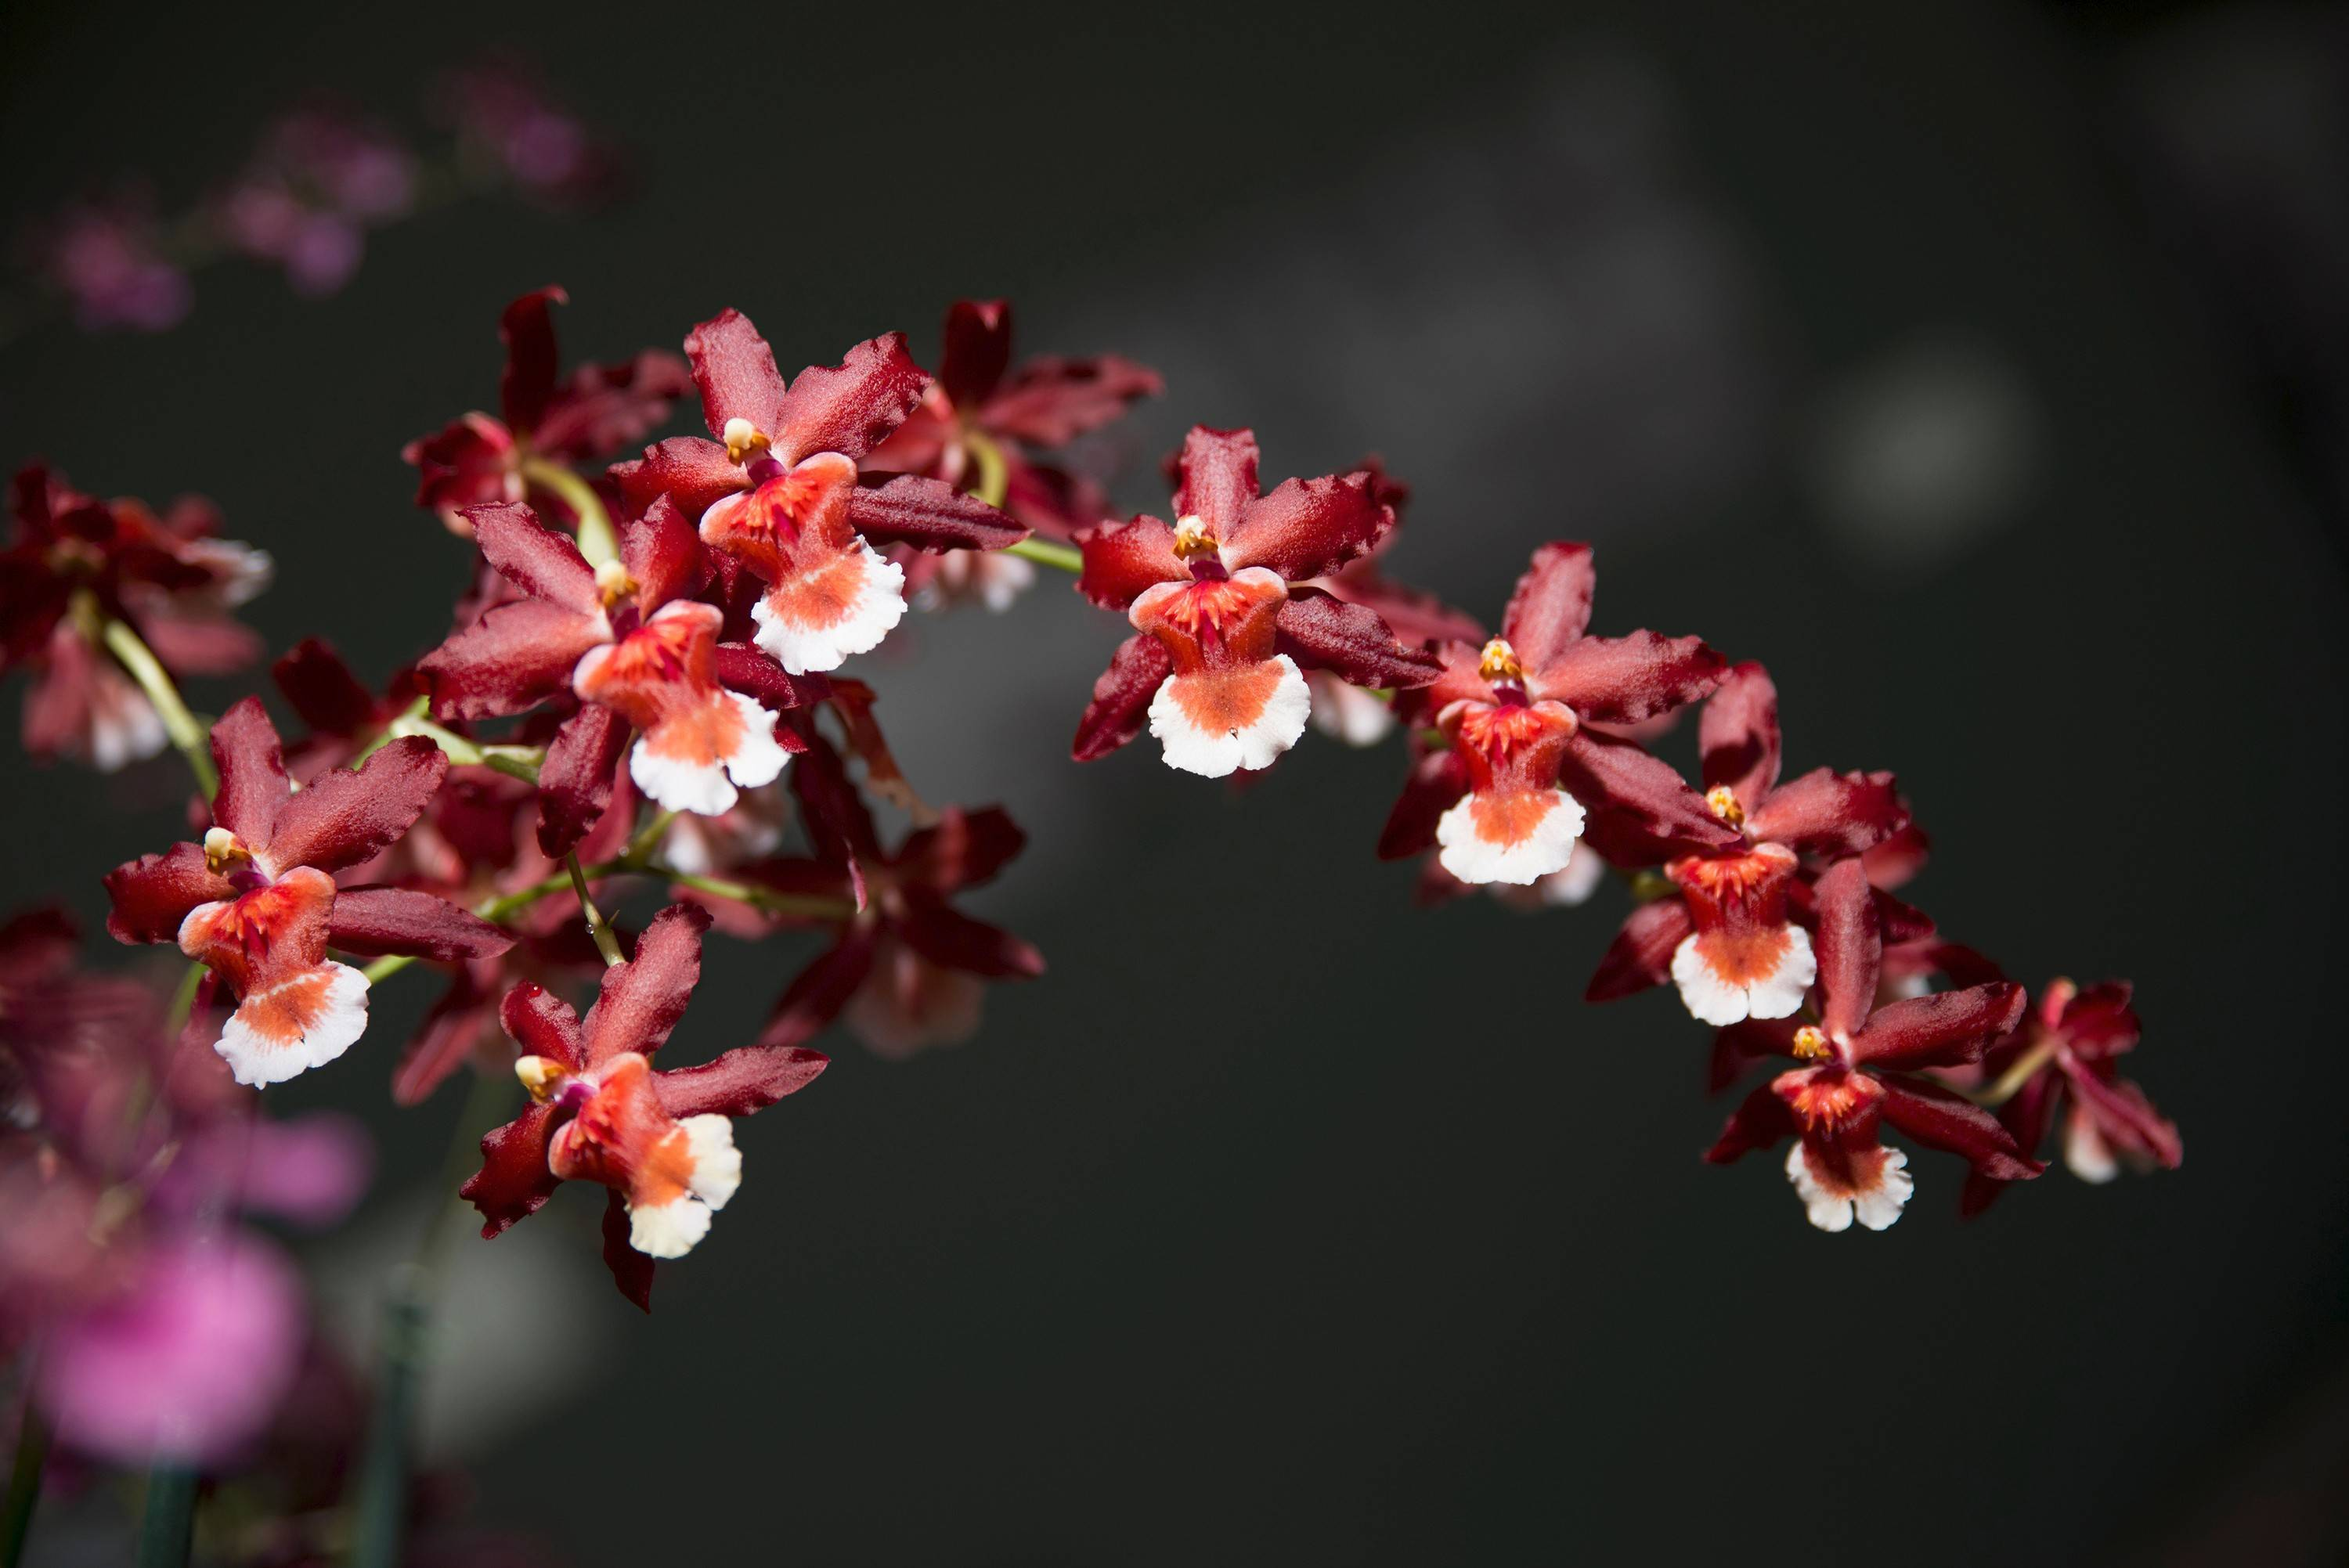 The Chicago Botanic Garden in Glencoe hosts The Orchid Show from Saturday, Feb. 15, to Sunday, March 16.